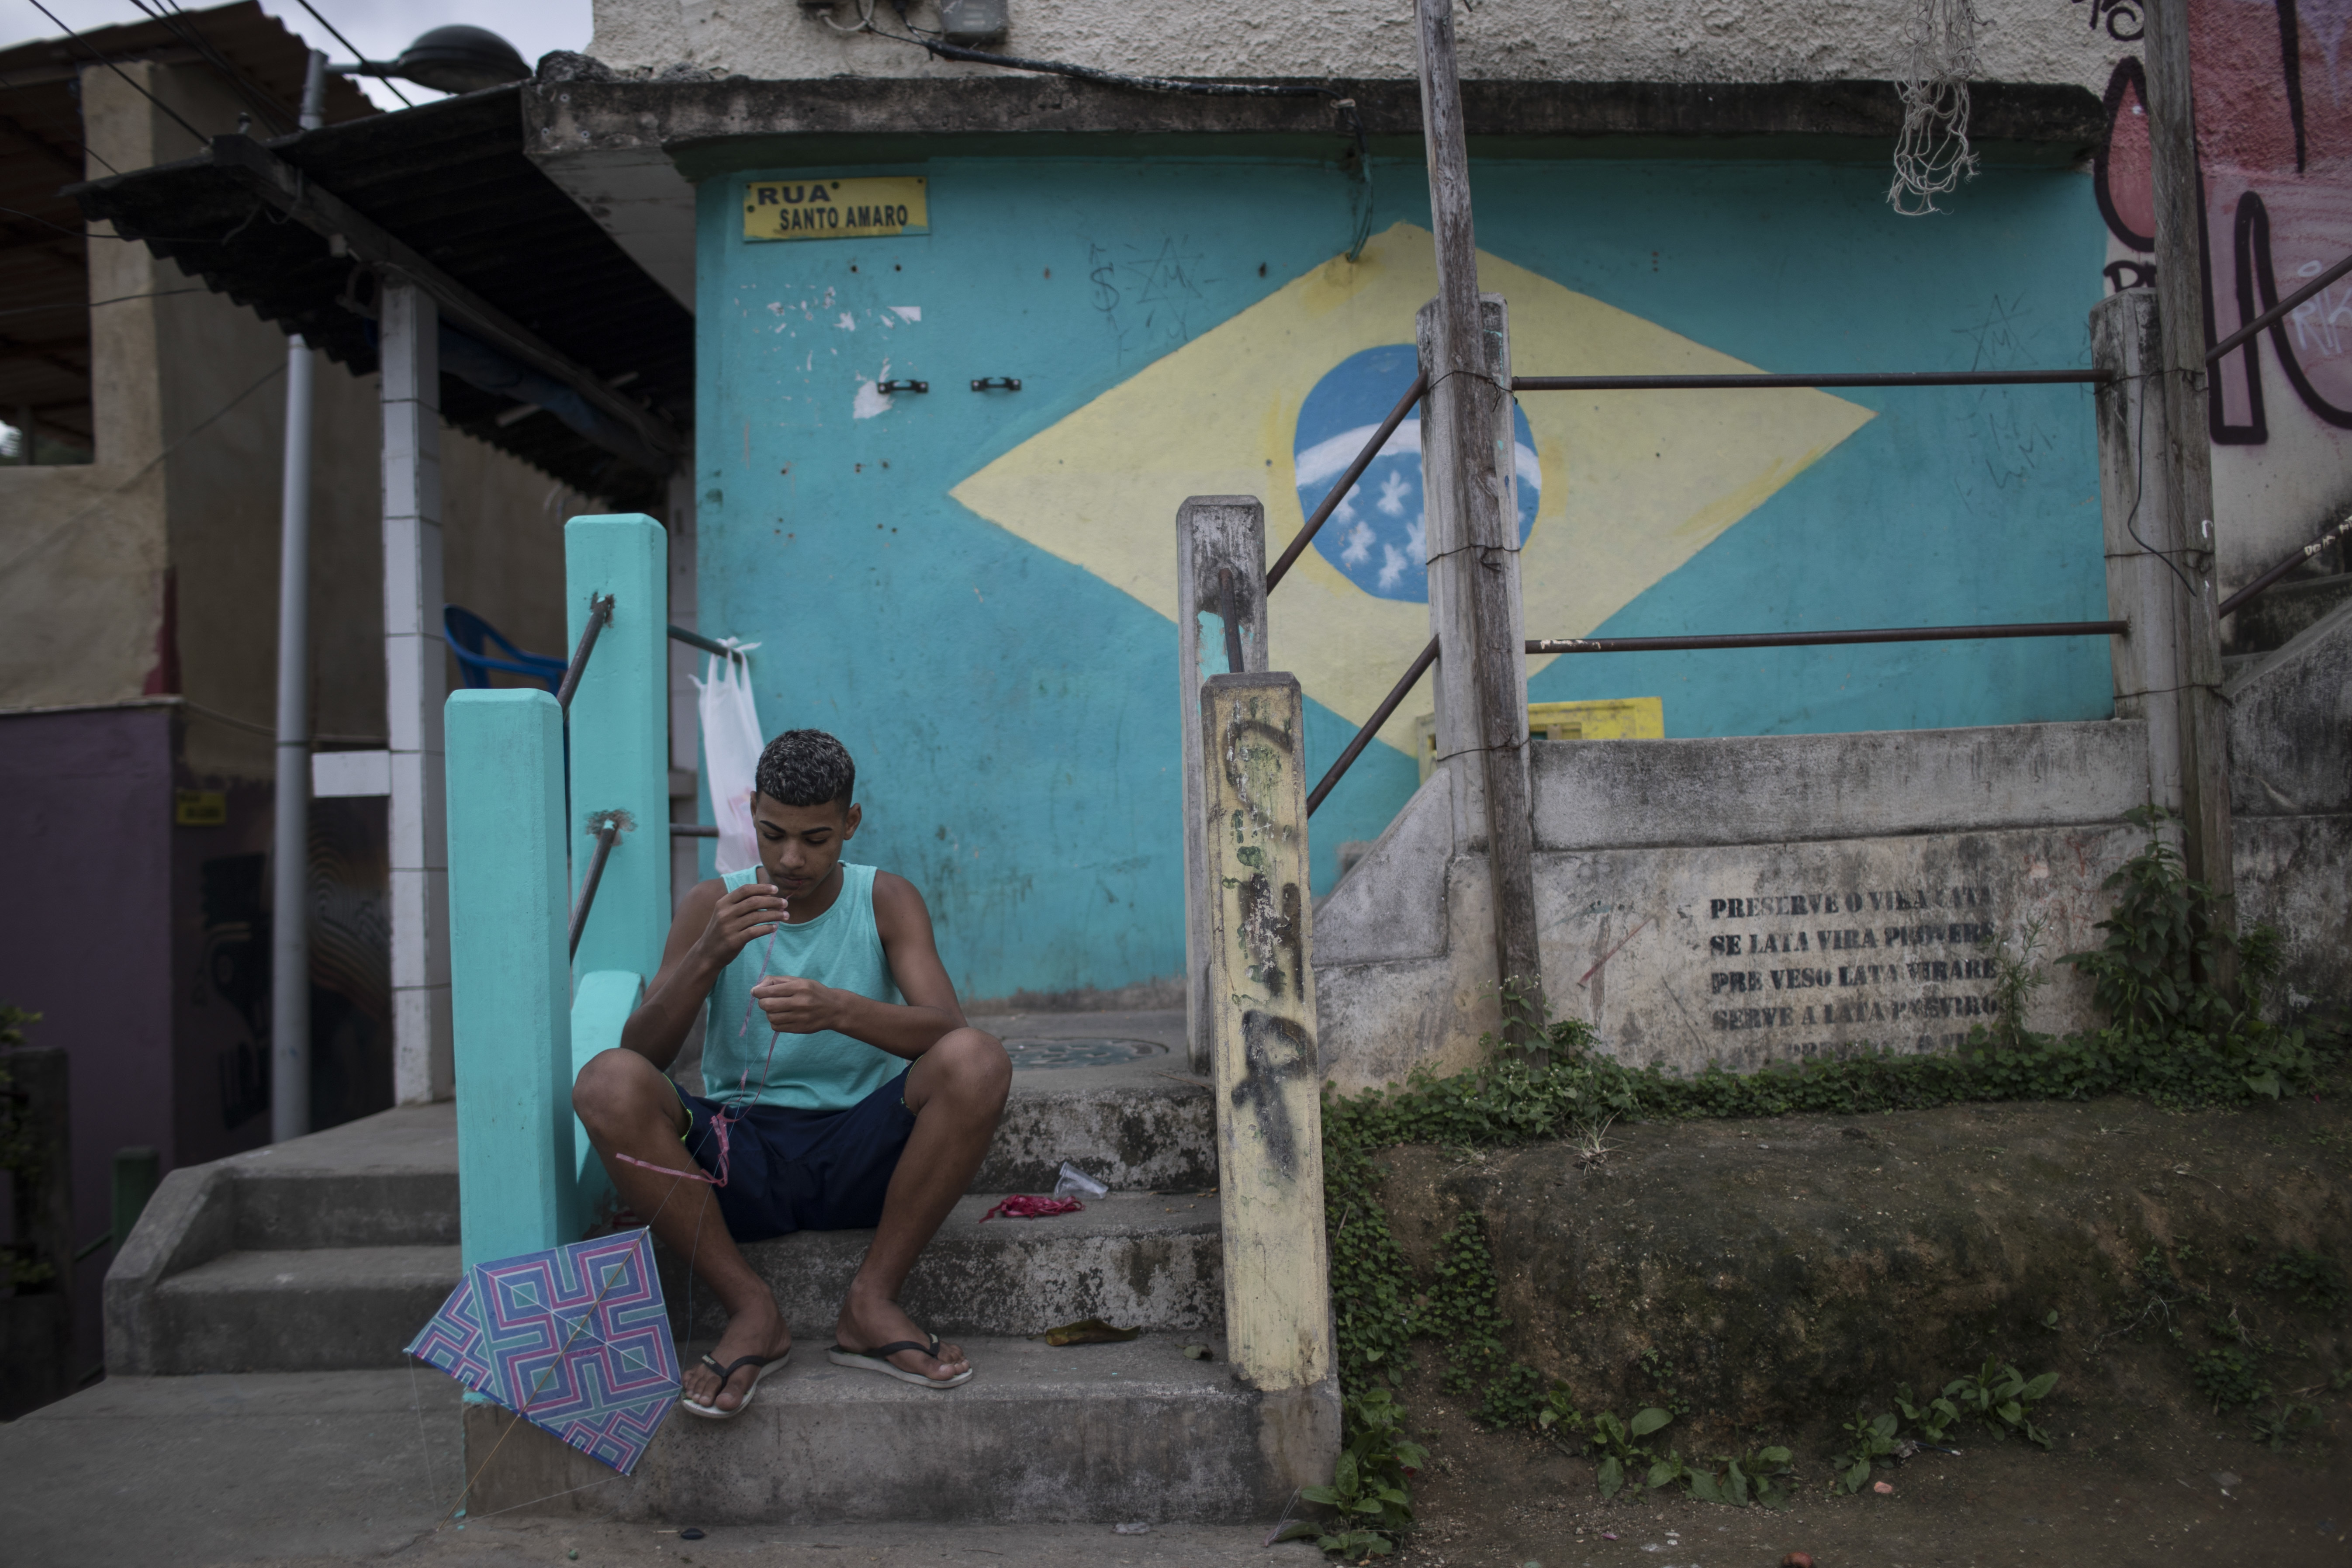 A Boy prepares his kite before flying it at the Babilonia slum in Rio de Janeiro, Brazil, Wednesday, Aug. 3, 2016. The Olympics are scheduled to open Aug. 5. (AP Photo/Felipe Dana)